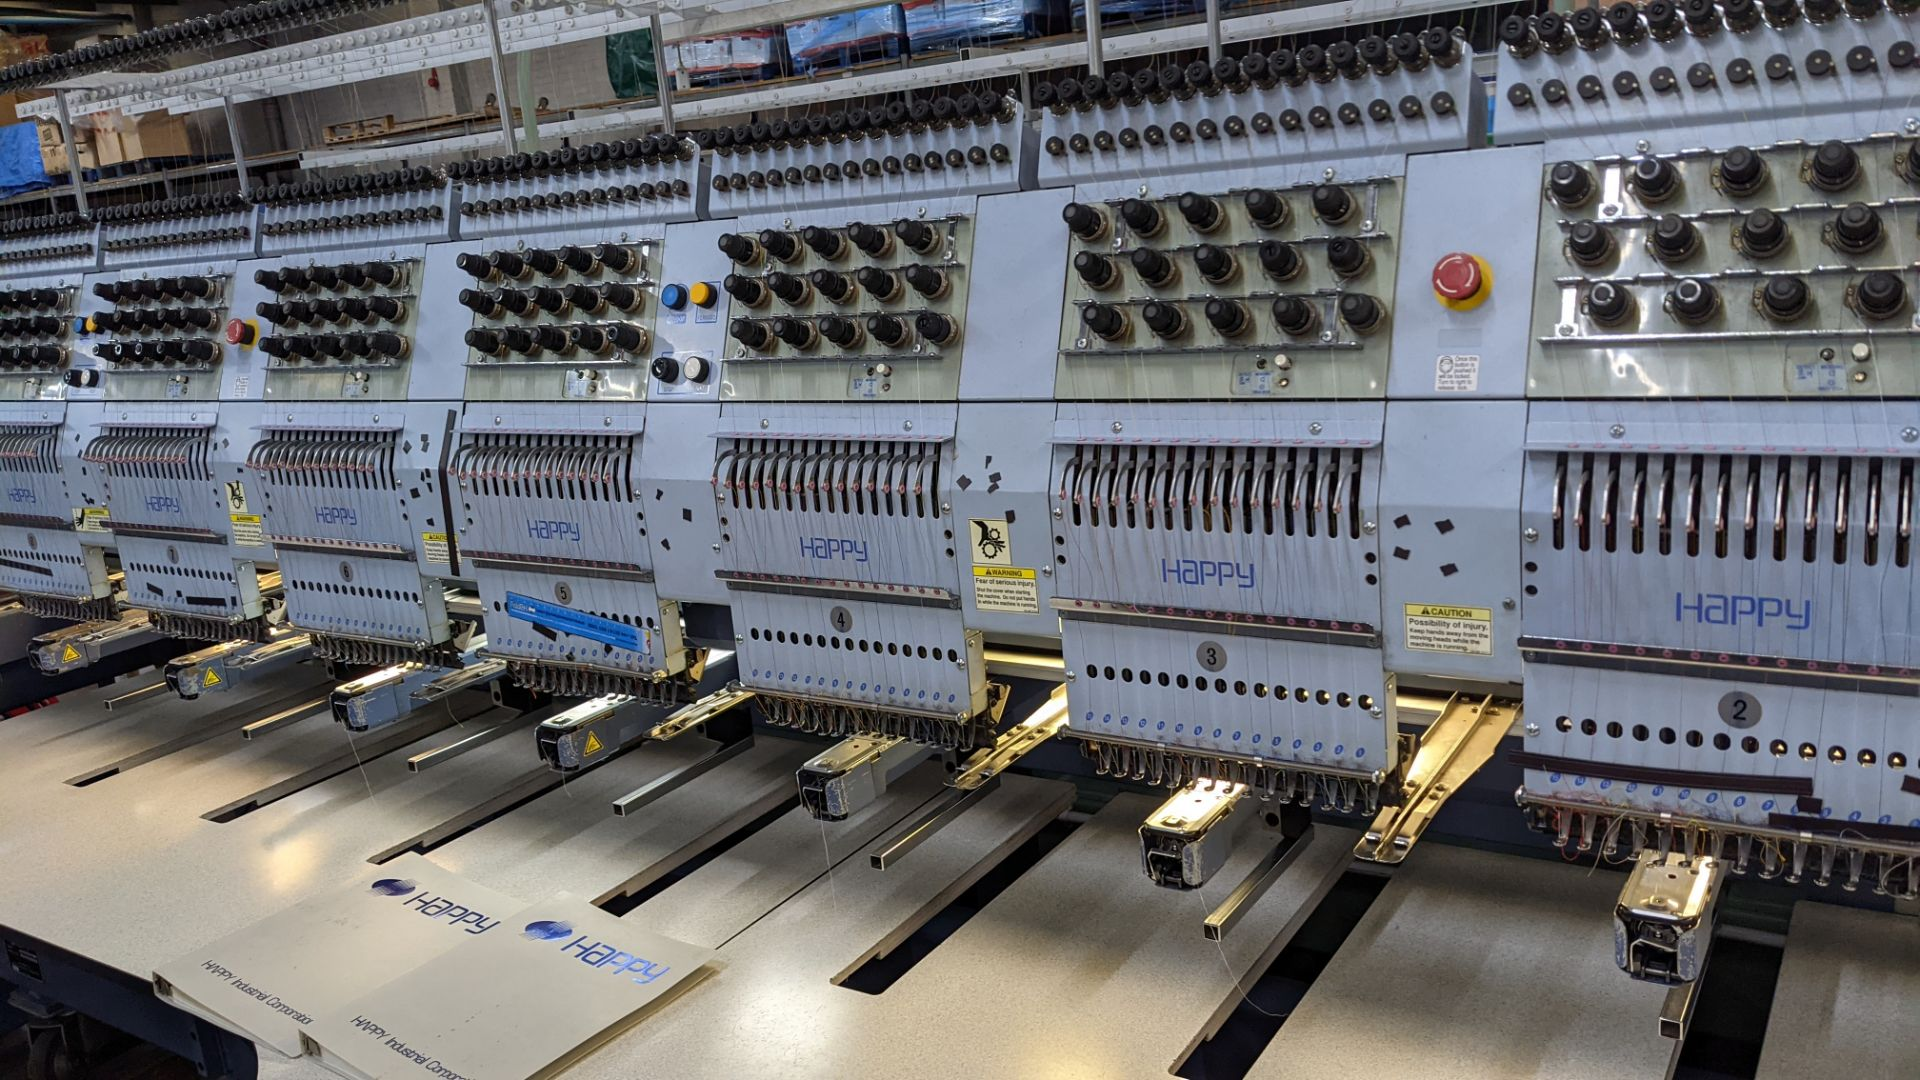 Happy 8 head embroidery machine, model HCG-1508-45TTC, 15 needles per head, including frames & other - Image 6 of 27